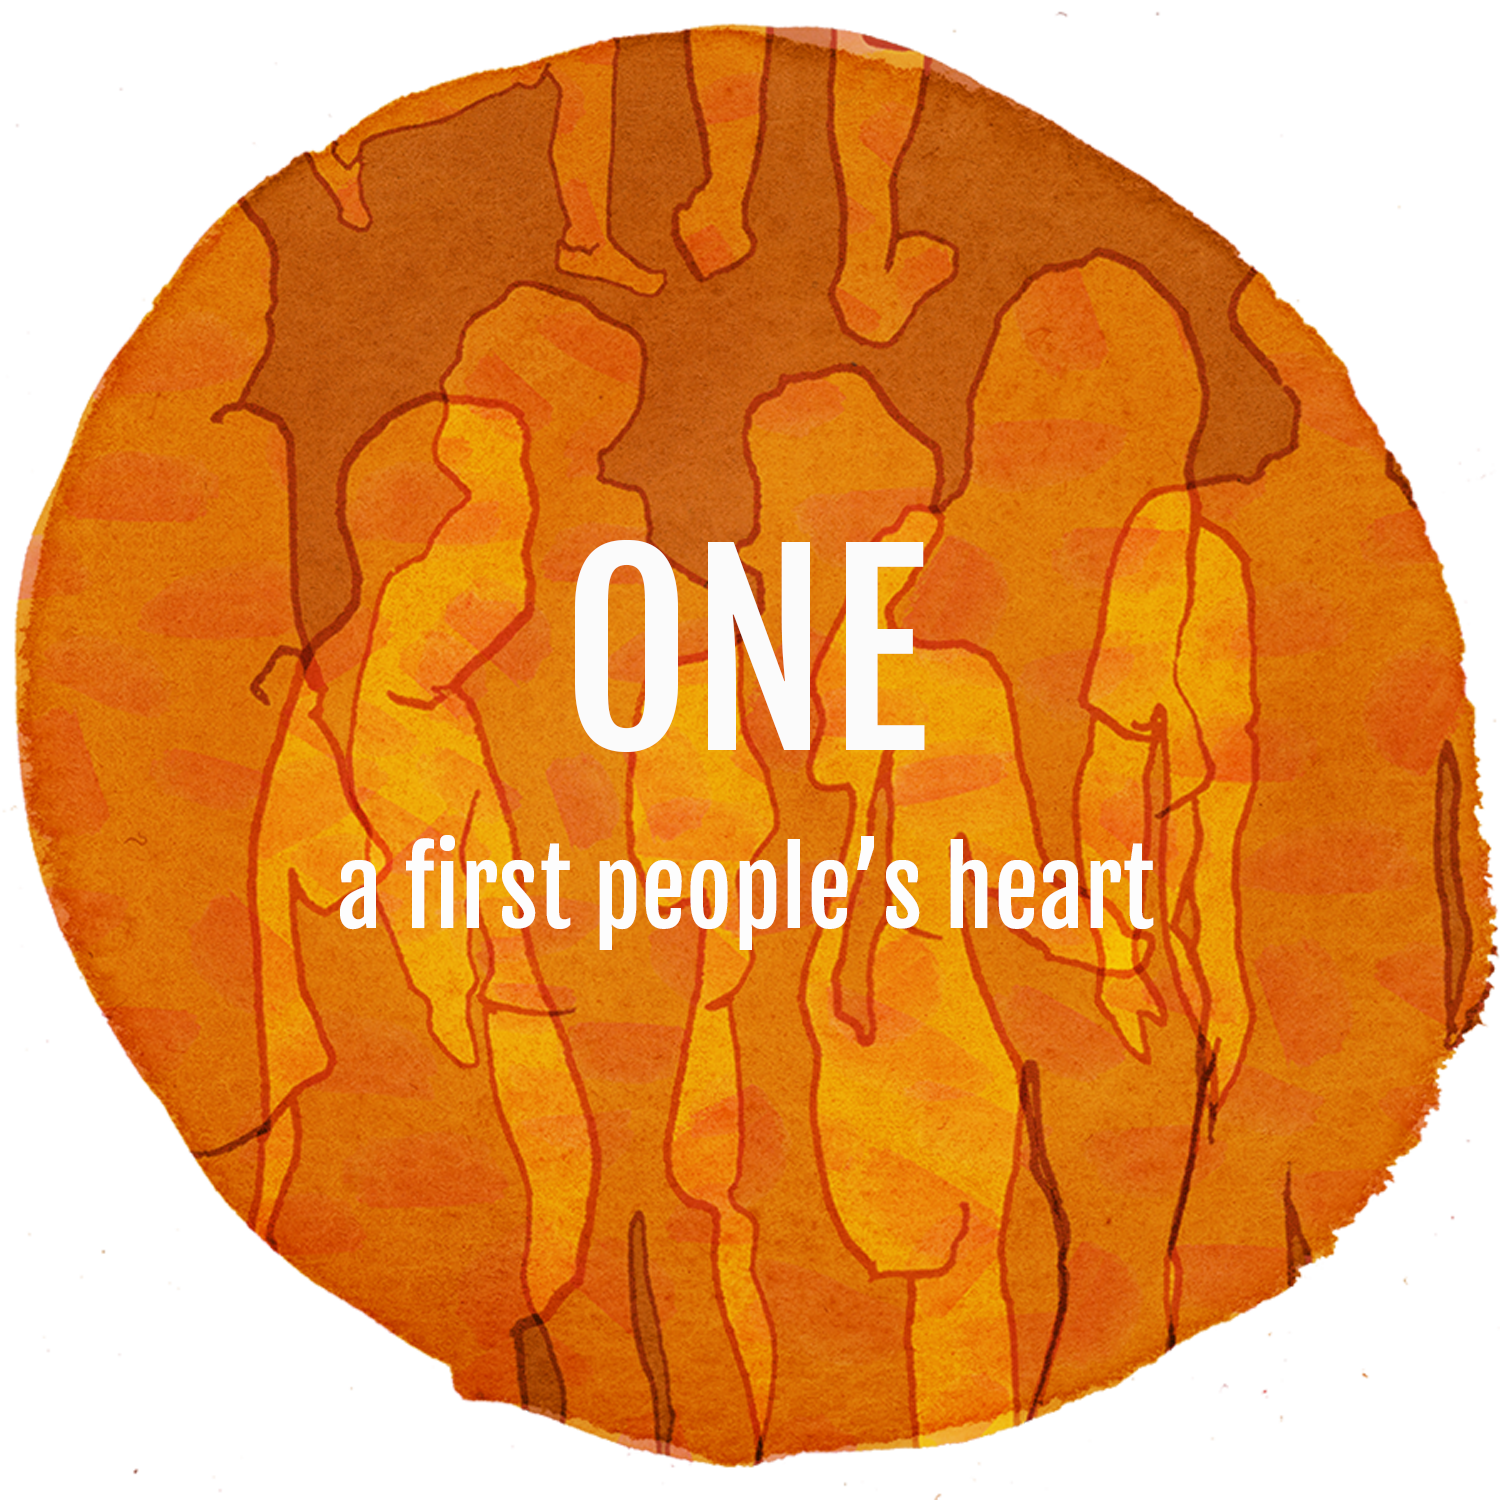 - Aboriginal and Torres Strait Island peoples and cultures are celebrated at the very heart of what it means to be Australian.Click on the image to read more...